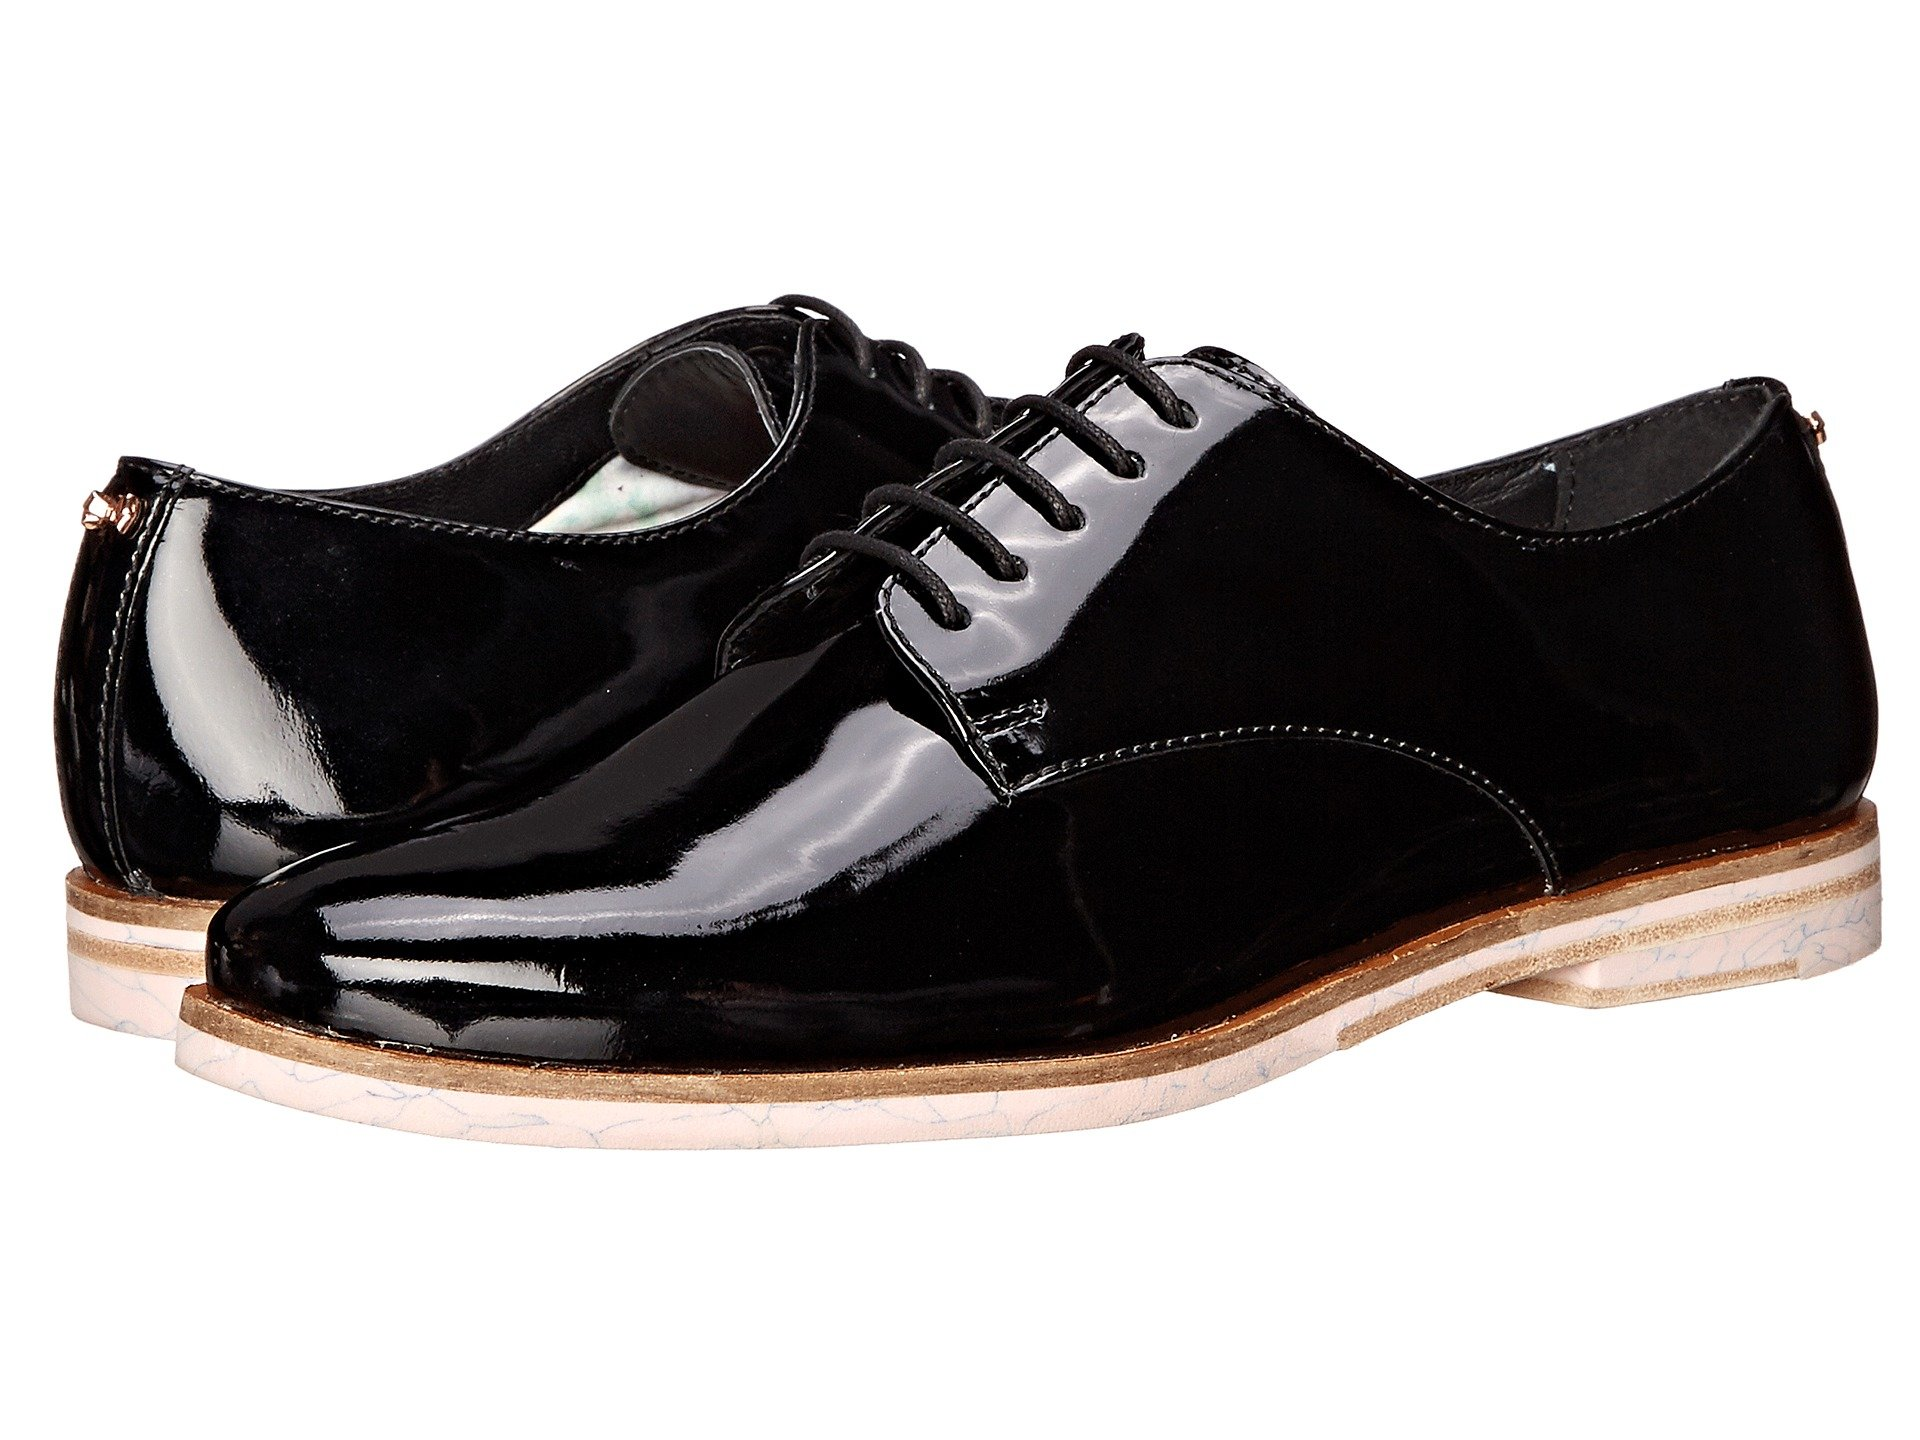 Zapato Casual para Mujer Ted Baker Loomi  + Ted Baker en VeoyCompro.net